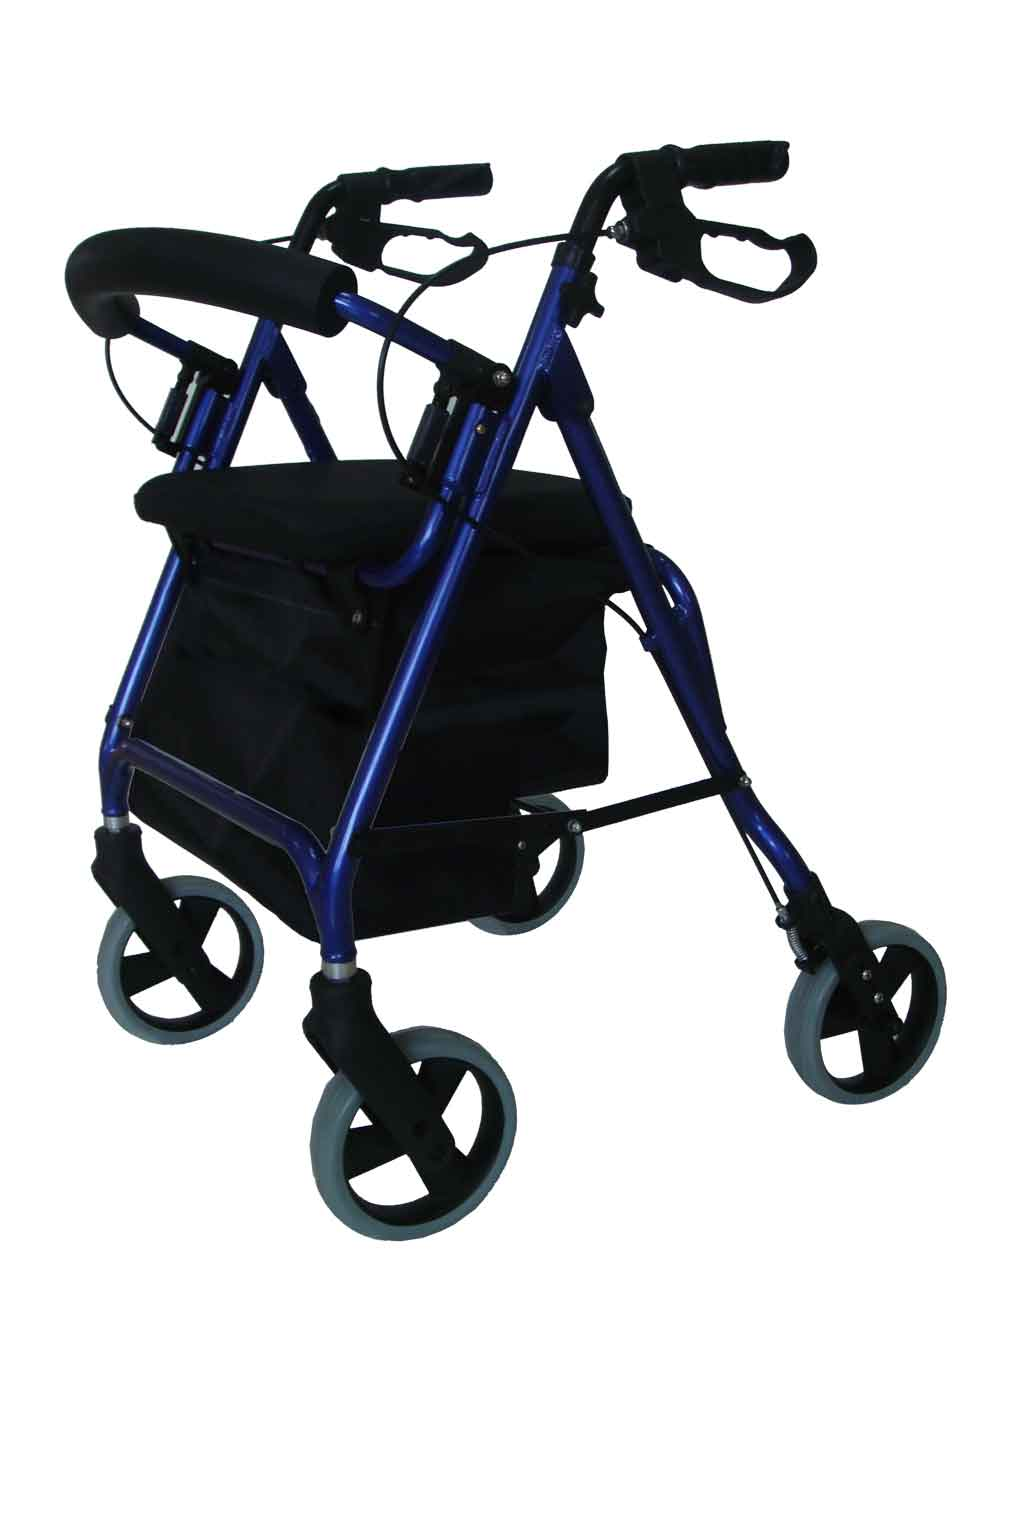 jr rollators, drive jr rollator 301ps, rollator walker parts and accessories, rollator w1700